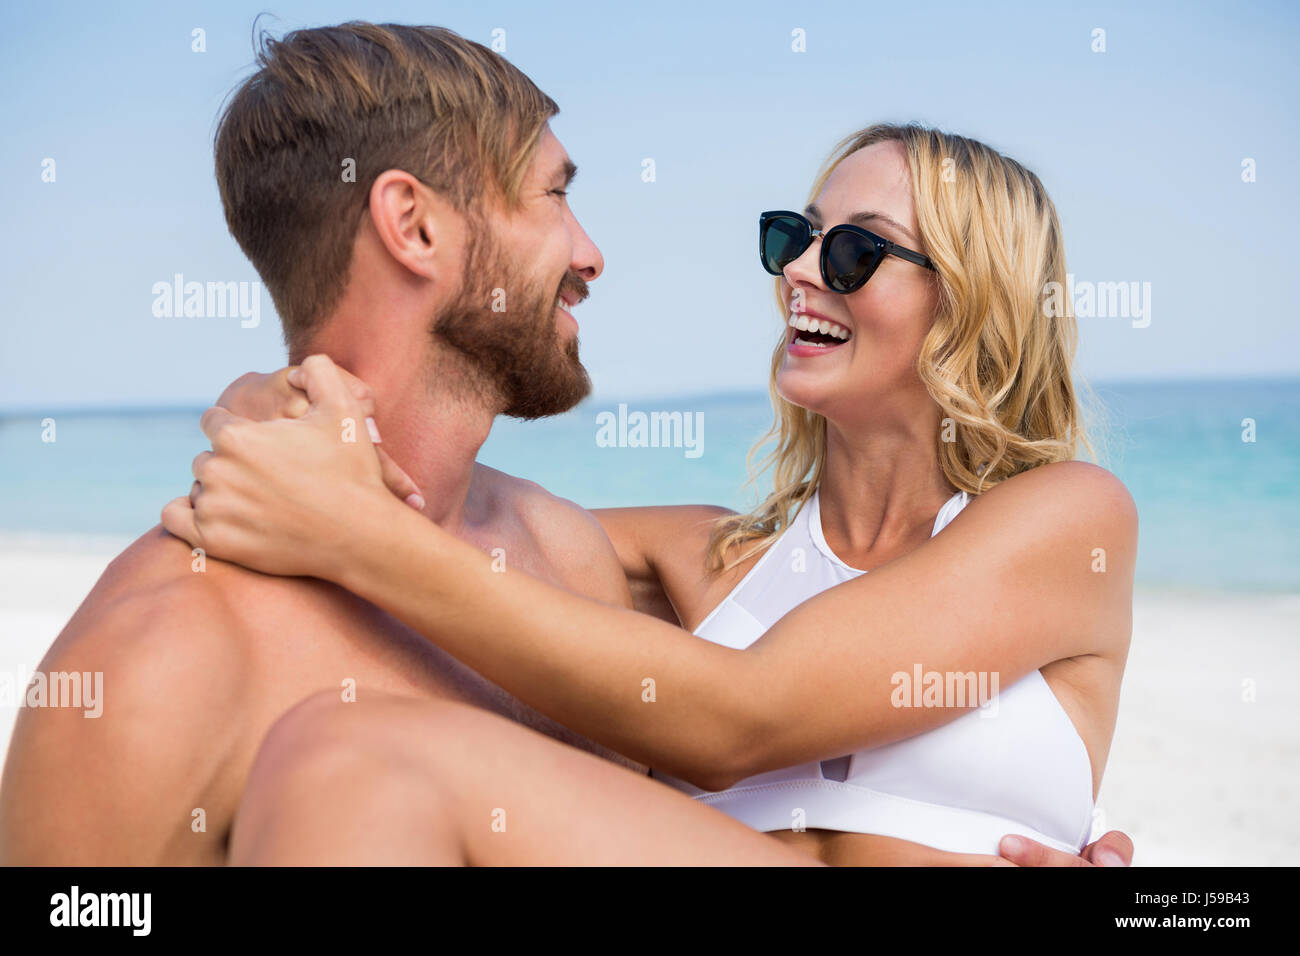 Happy man carrying girlfriend while standing at beach - Stock Image